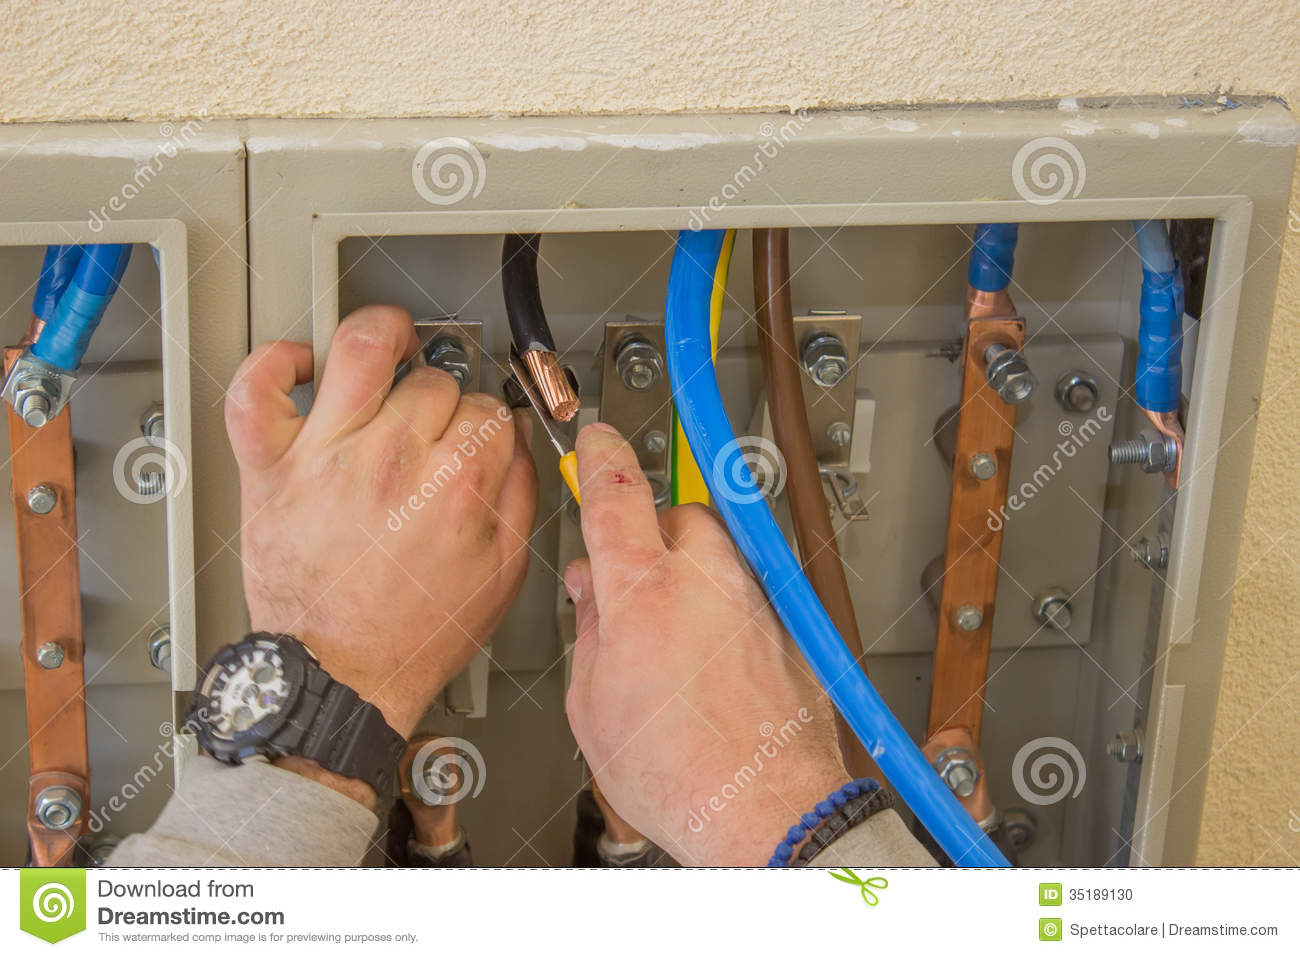 Electrician connecting wires in the electrical cabinet